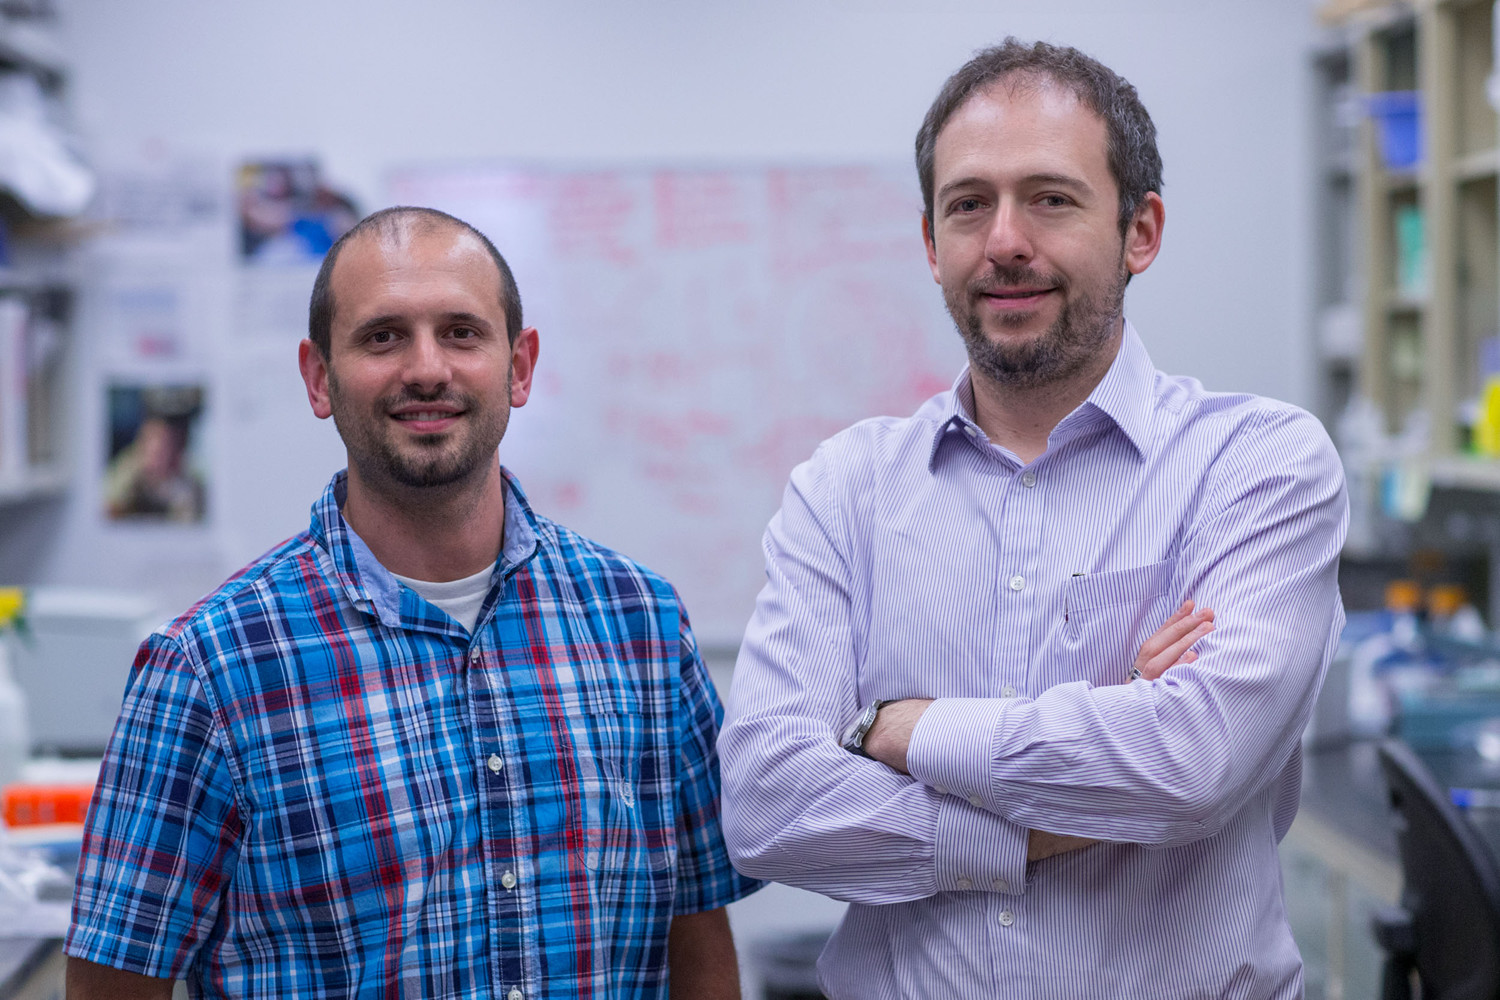 Postdoctoral researcher Anthony J. Filiano, left, and Jonathan Kipnis, chairman of UVA's Department of Neuroscience.